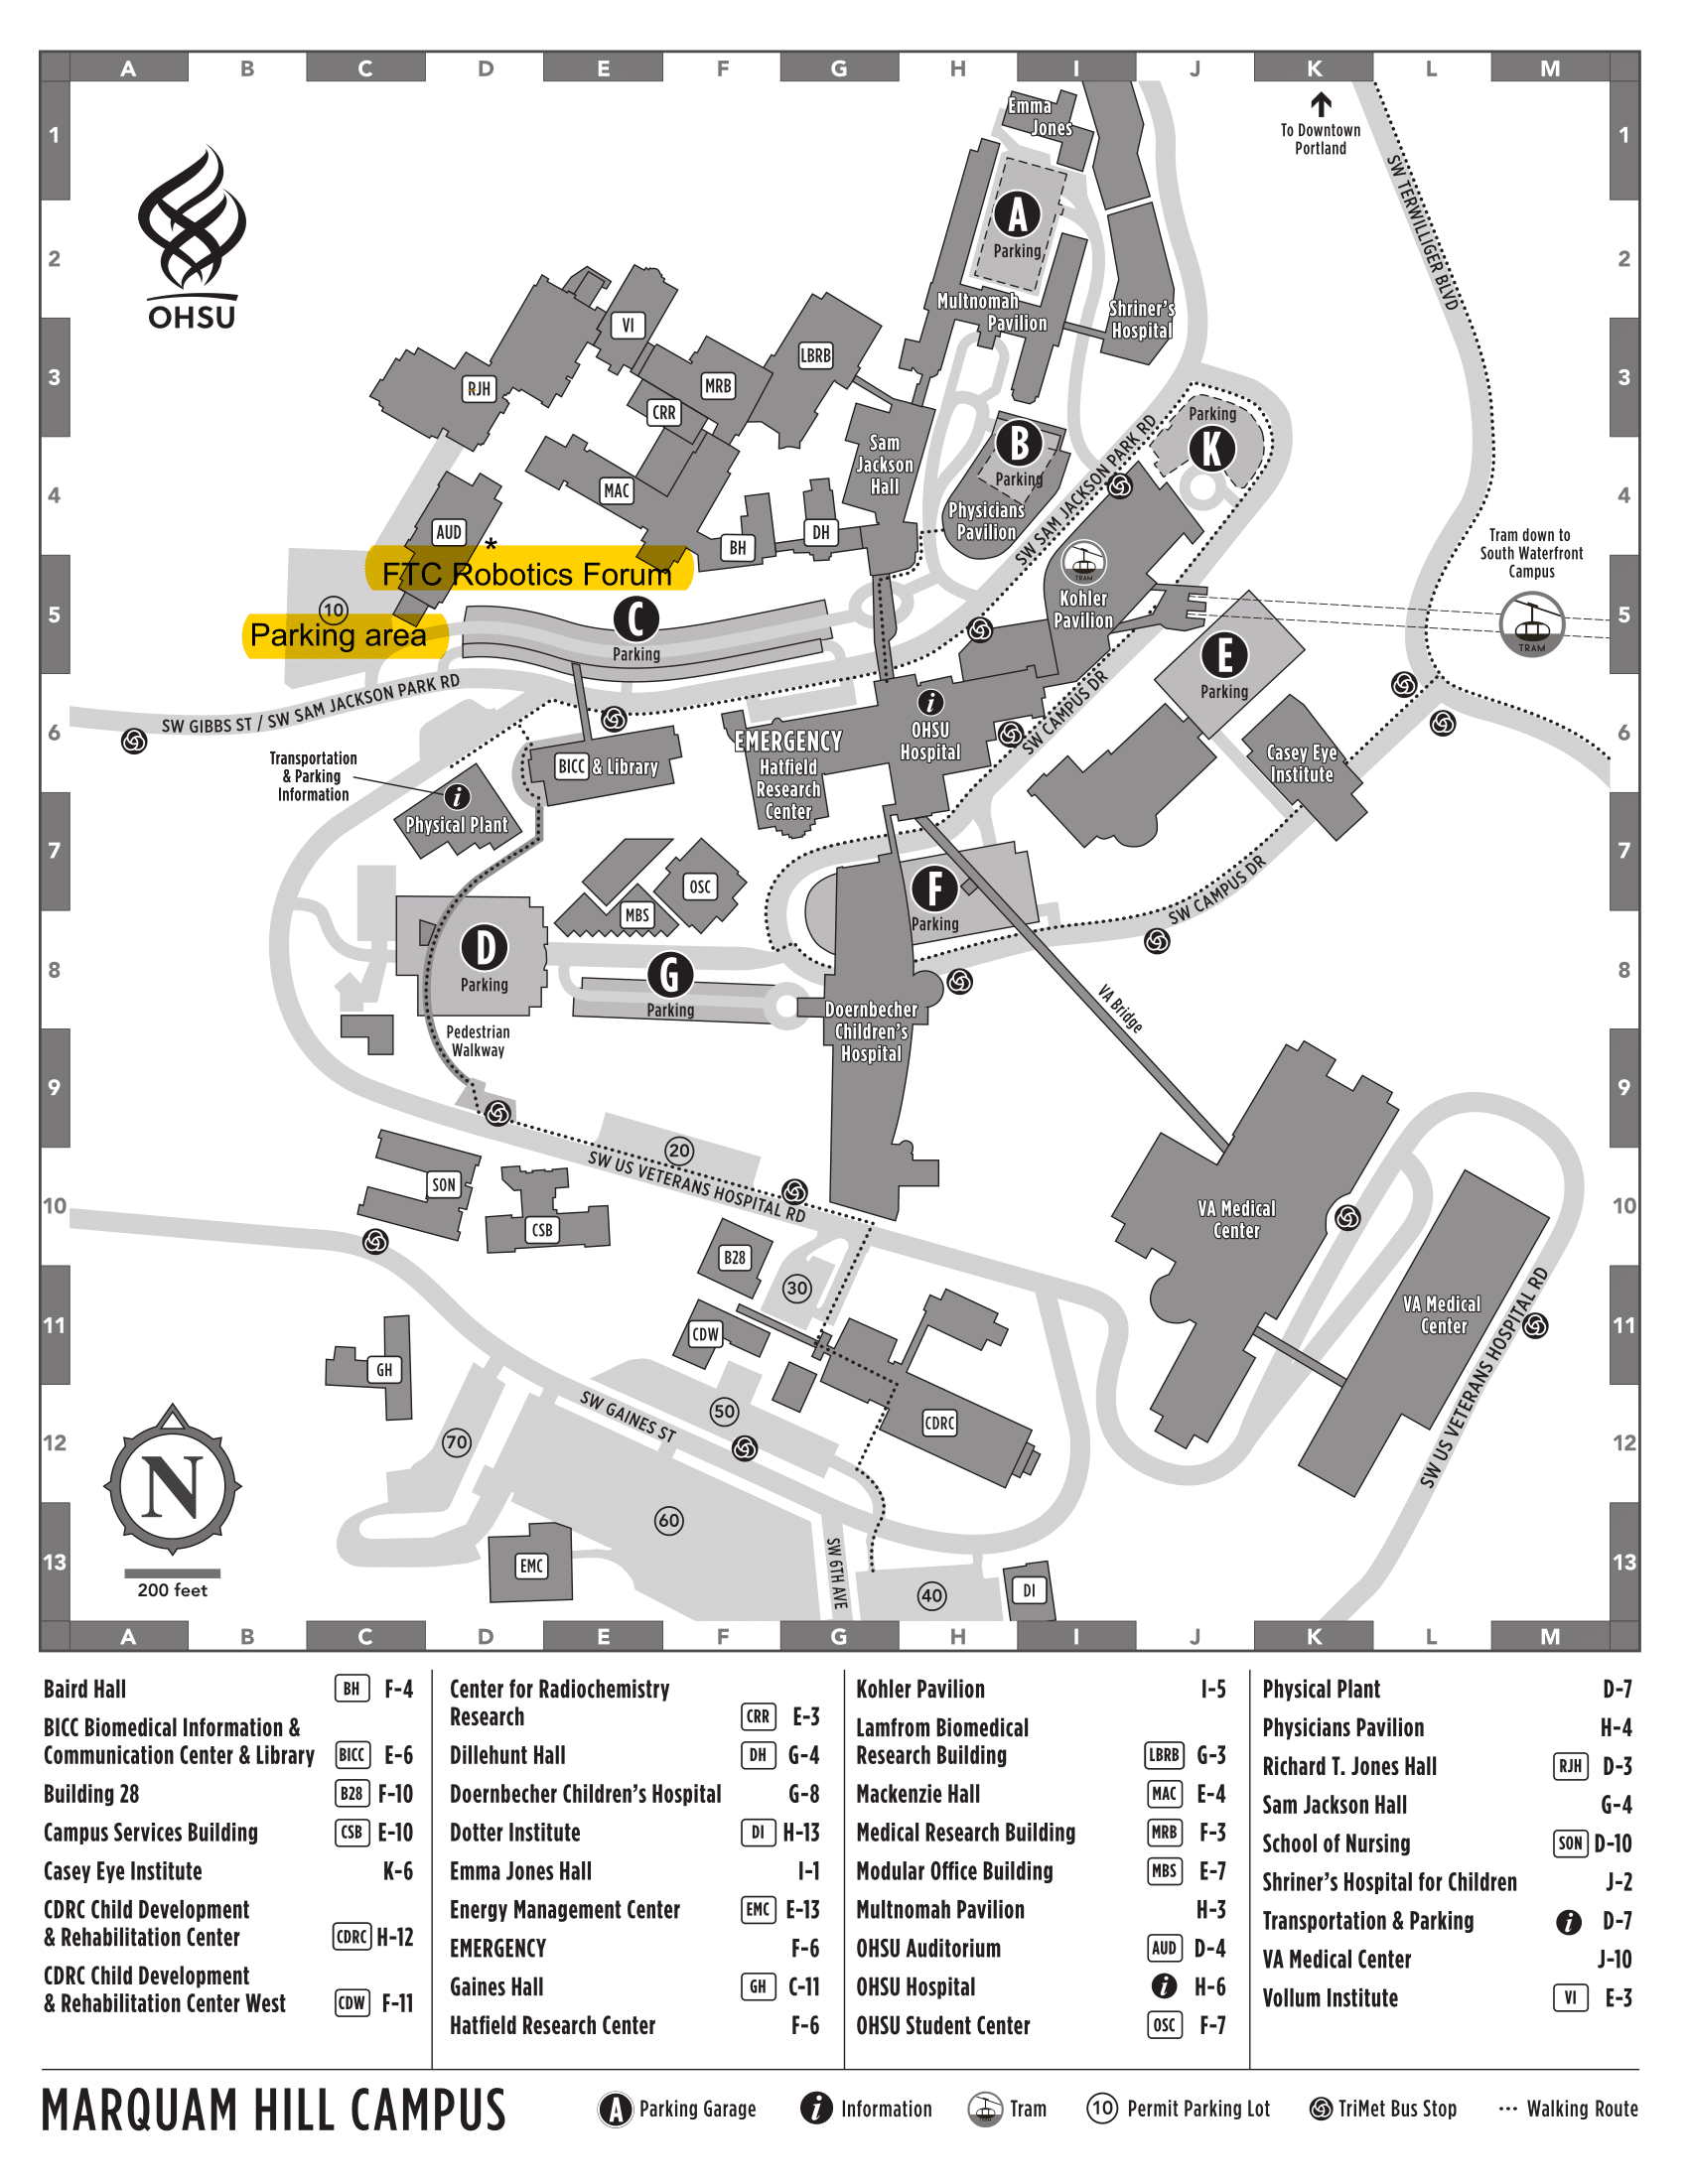 OHSU Map for FTC Robotics Forum